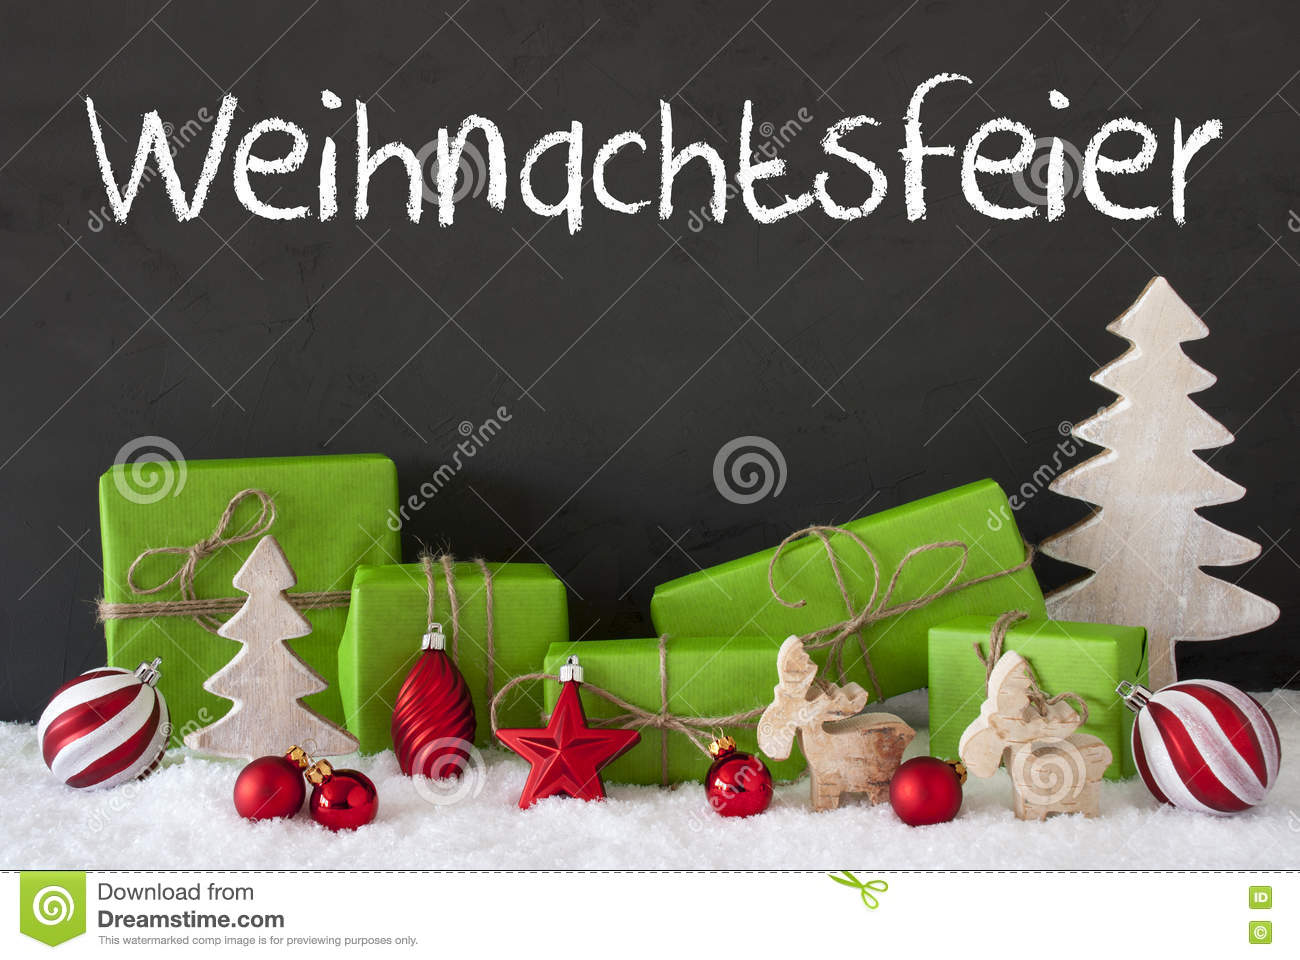 Save The Date Weihnachtsfeier.Decoration Cement Snow Weihnachtsfeier Means Christmas Party